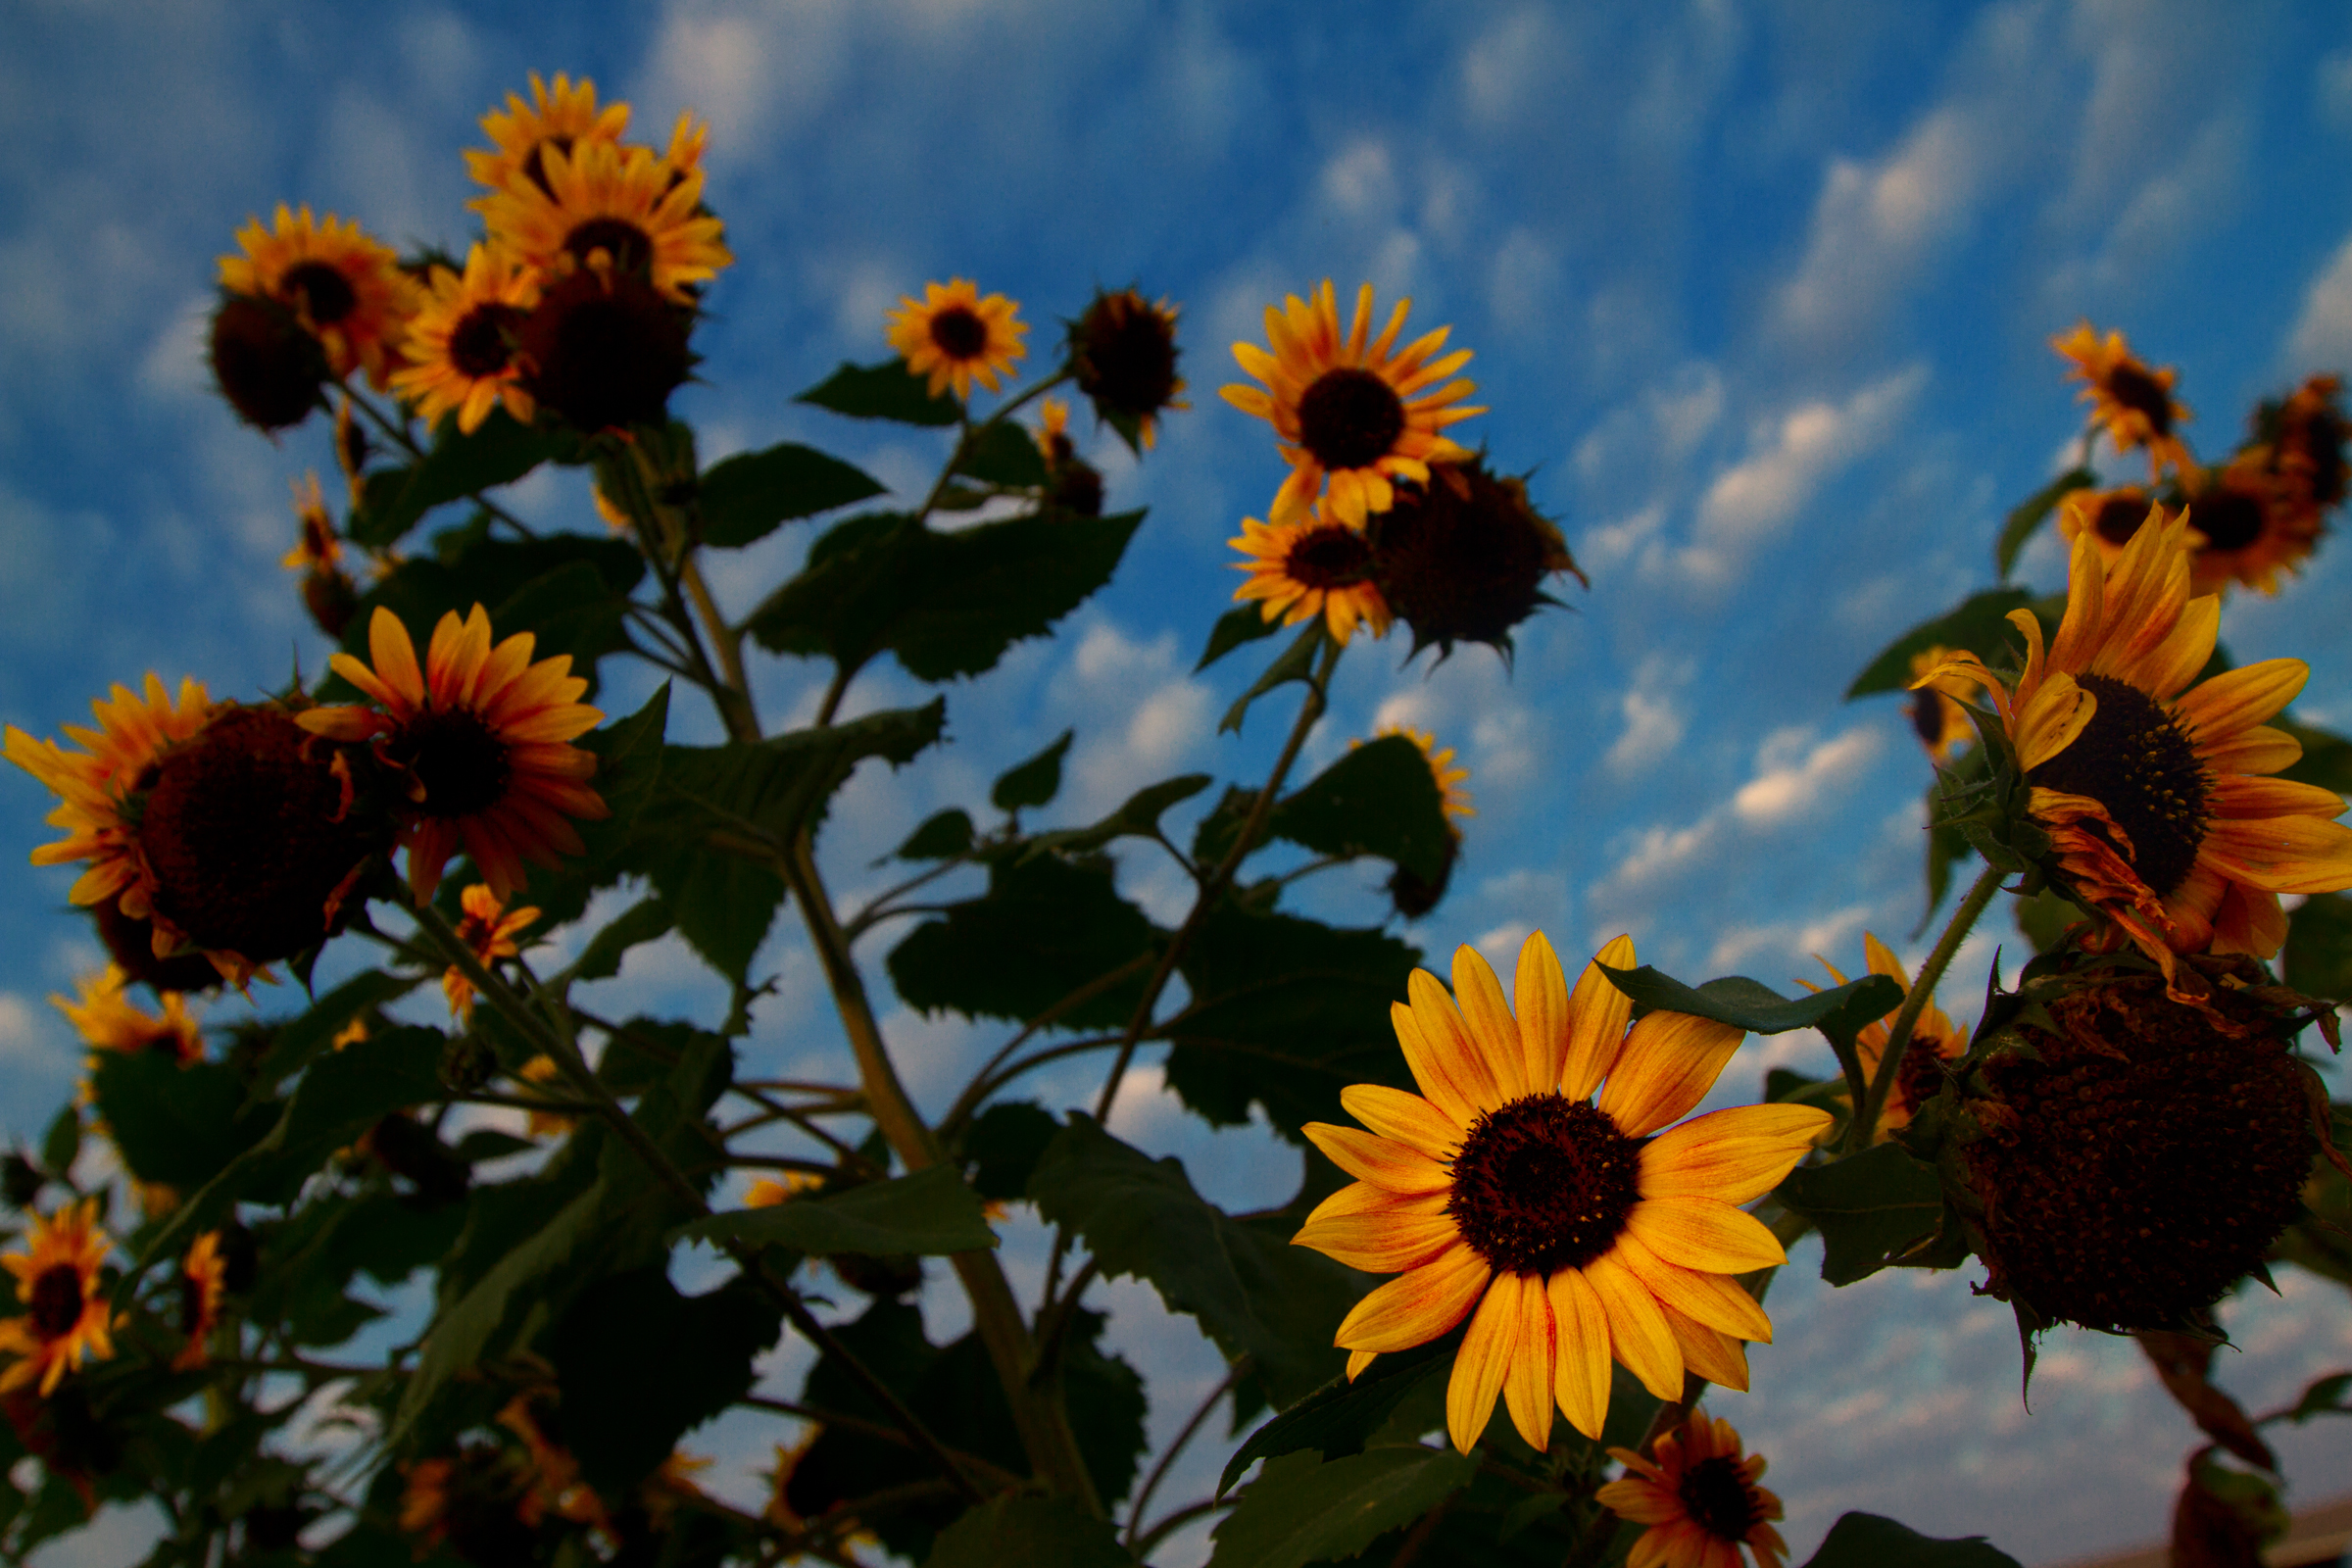 Libby_Volgyes_013_farm_photography_palm_beach_county_sunflowers_kai_kai.jpg